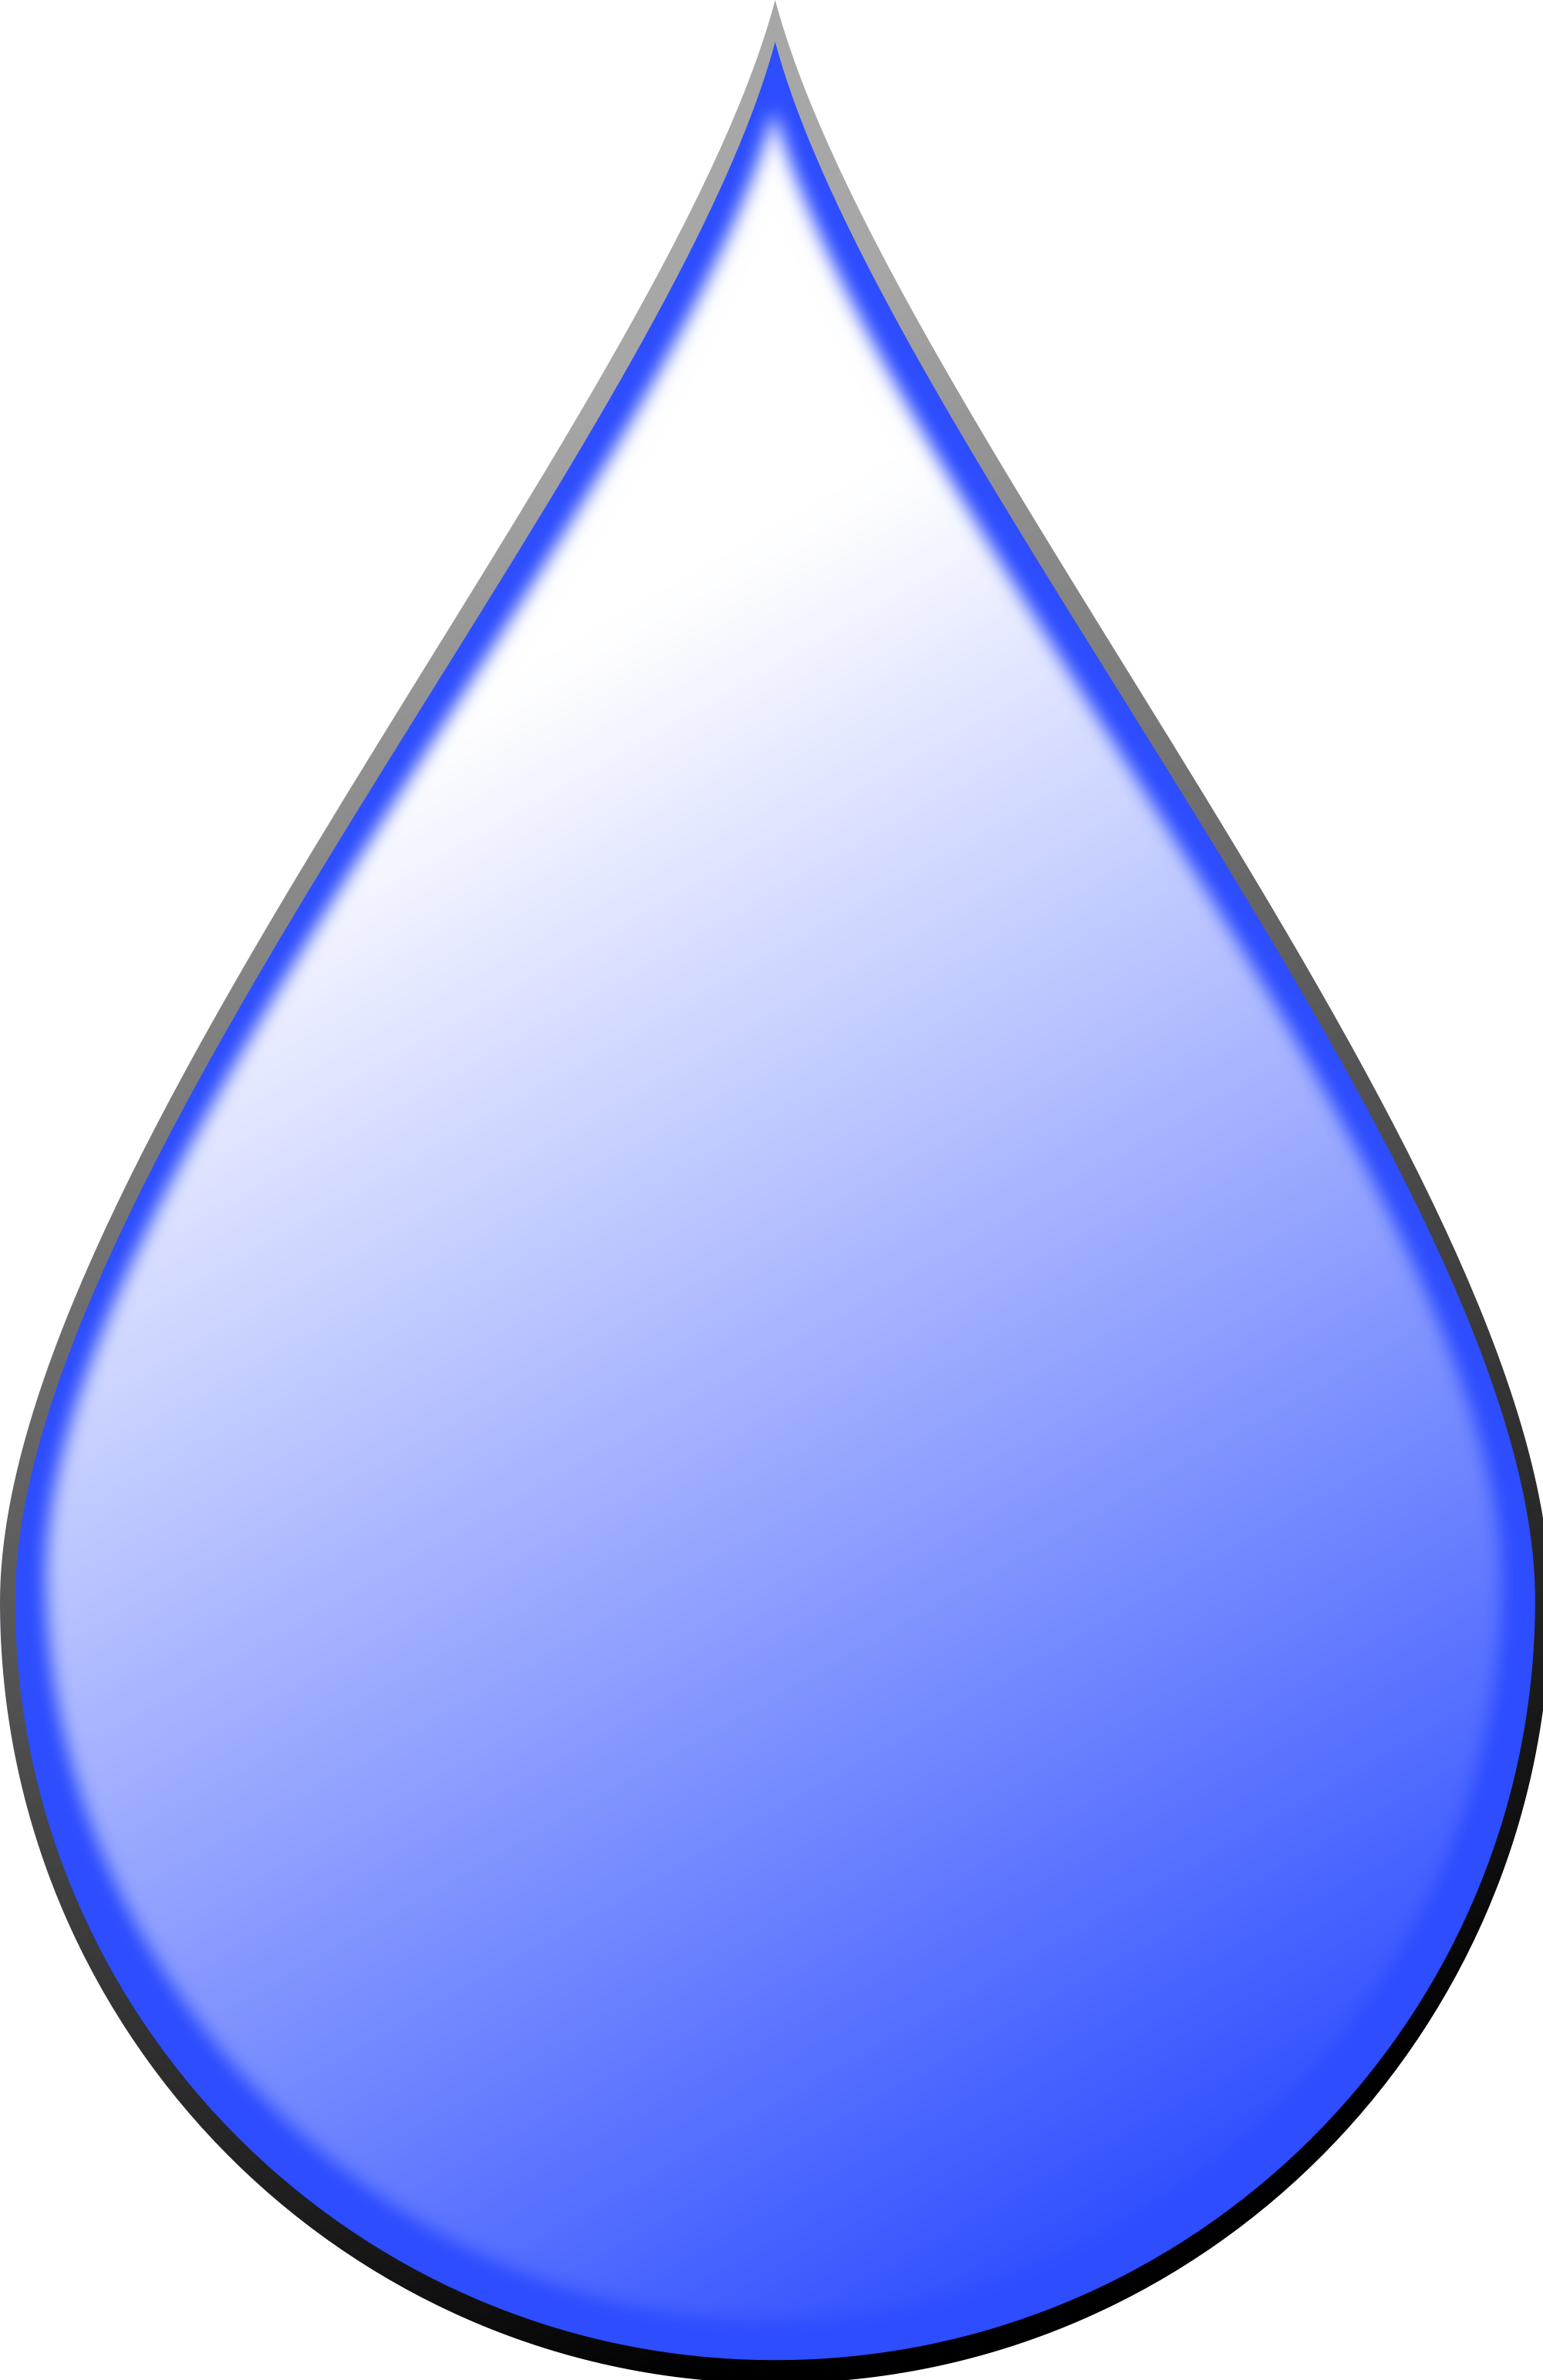 File:Glossy Raindrop.svg - Wikimedia Commons